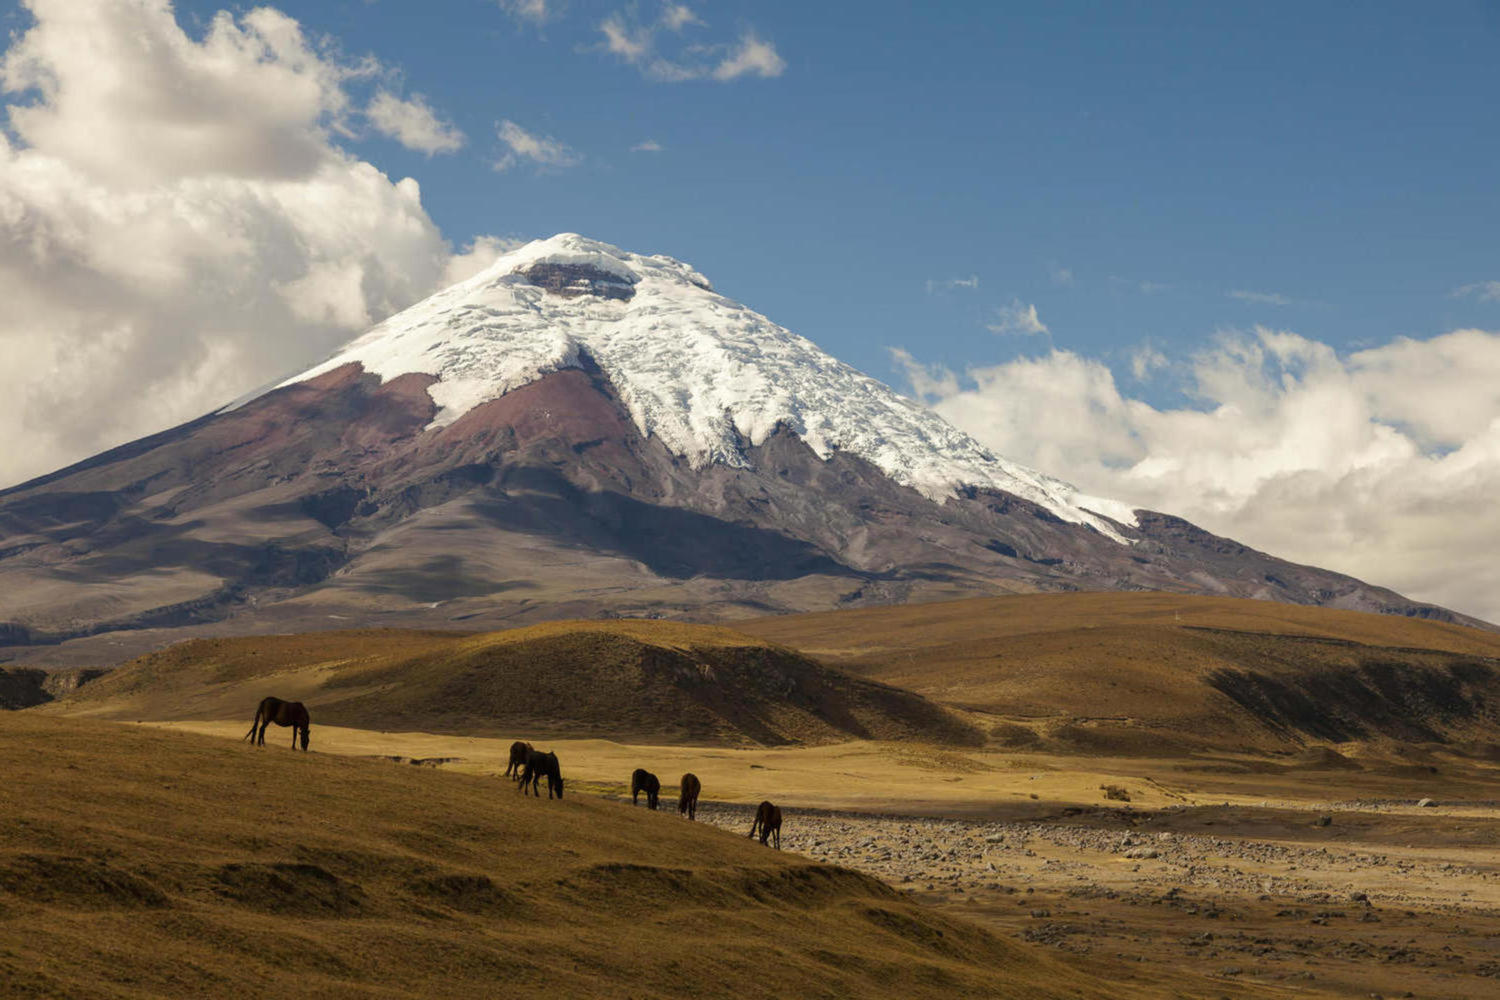 Wild horses grazing at the foot of Cotopaxi volcano